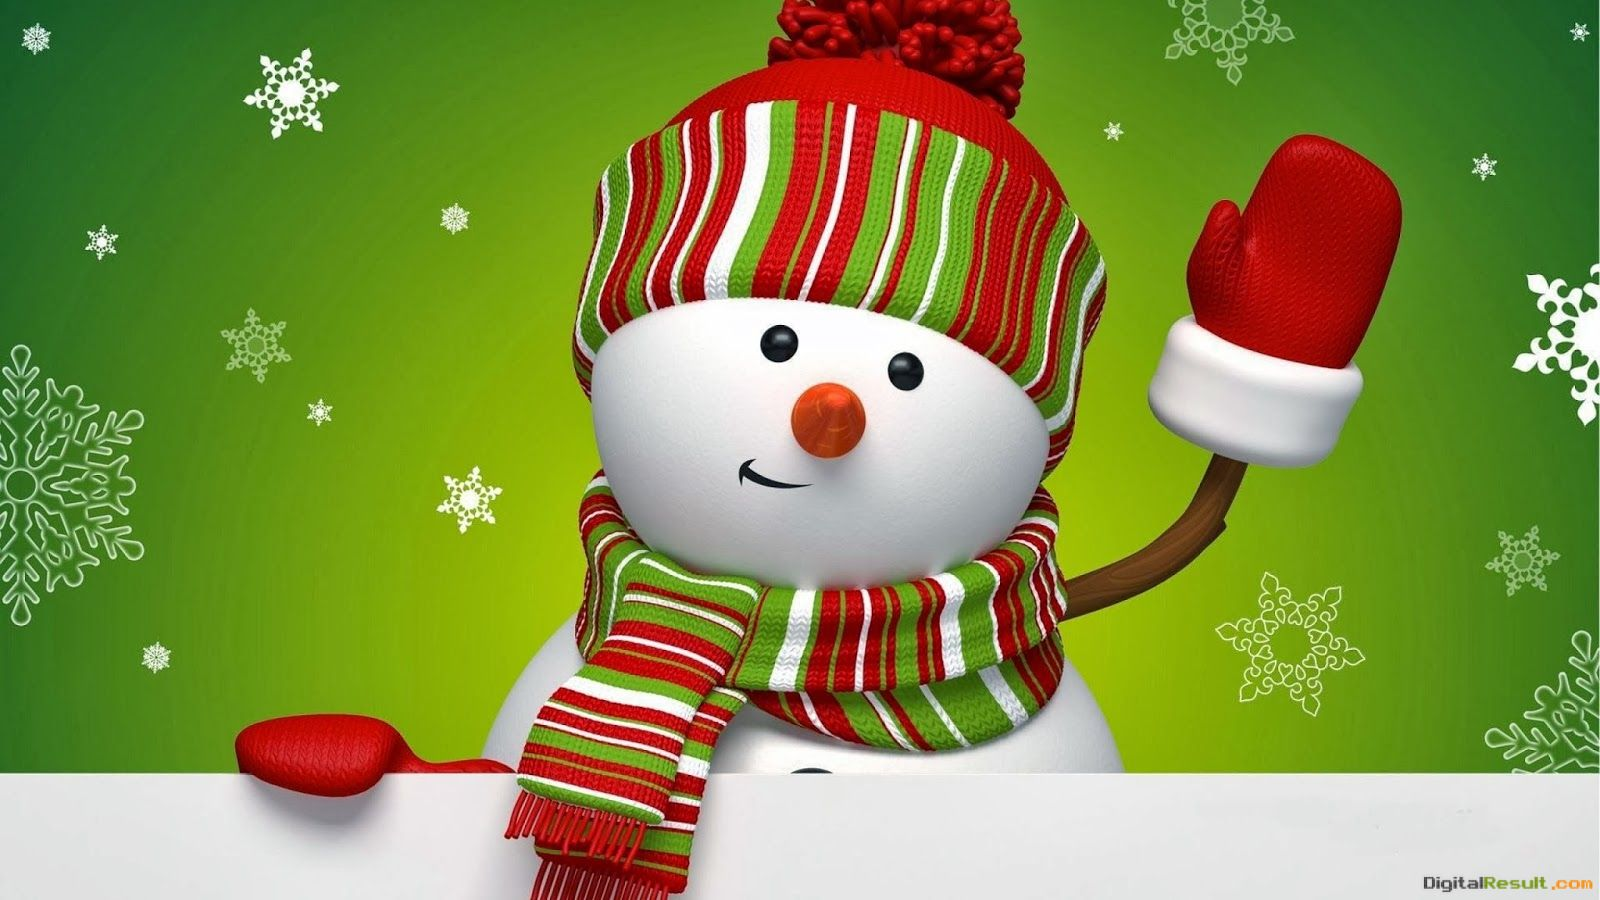 Snowman Merry Christmas Hd | Hd Wallpapers 1593